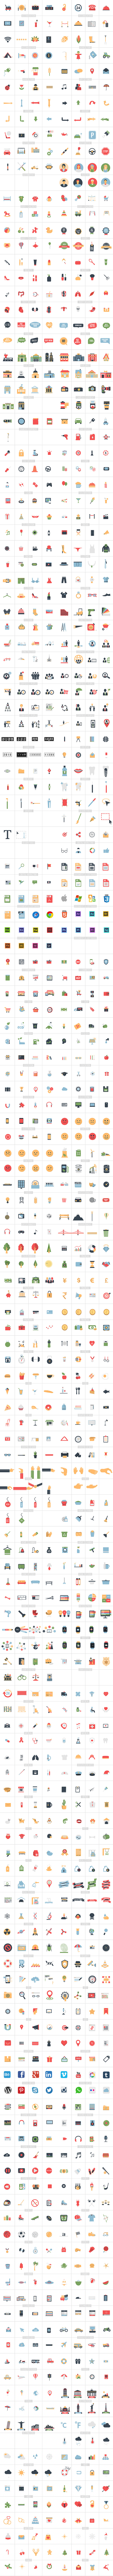 Flat Animated Icons Library - 19